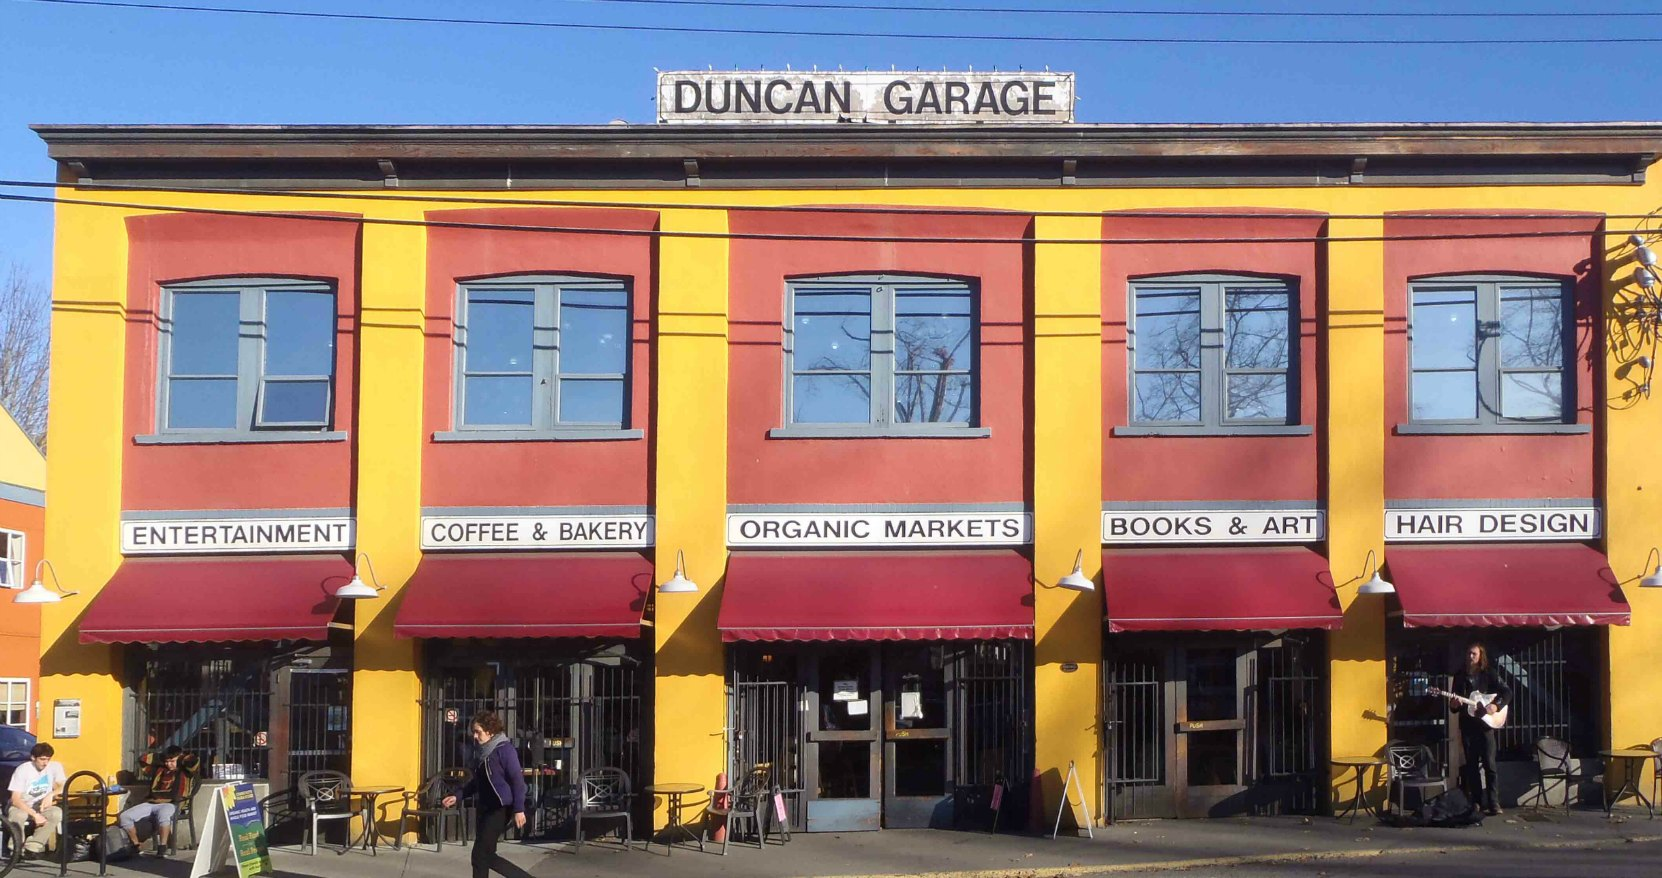 Duncan Garage, built in 1913 by Temple Lodge No.33 members Norman T. Corfield and John F. Corfield.